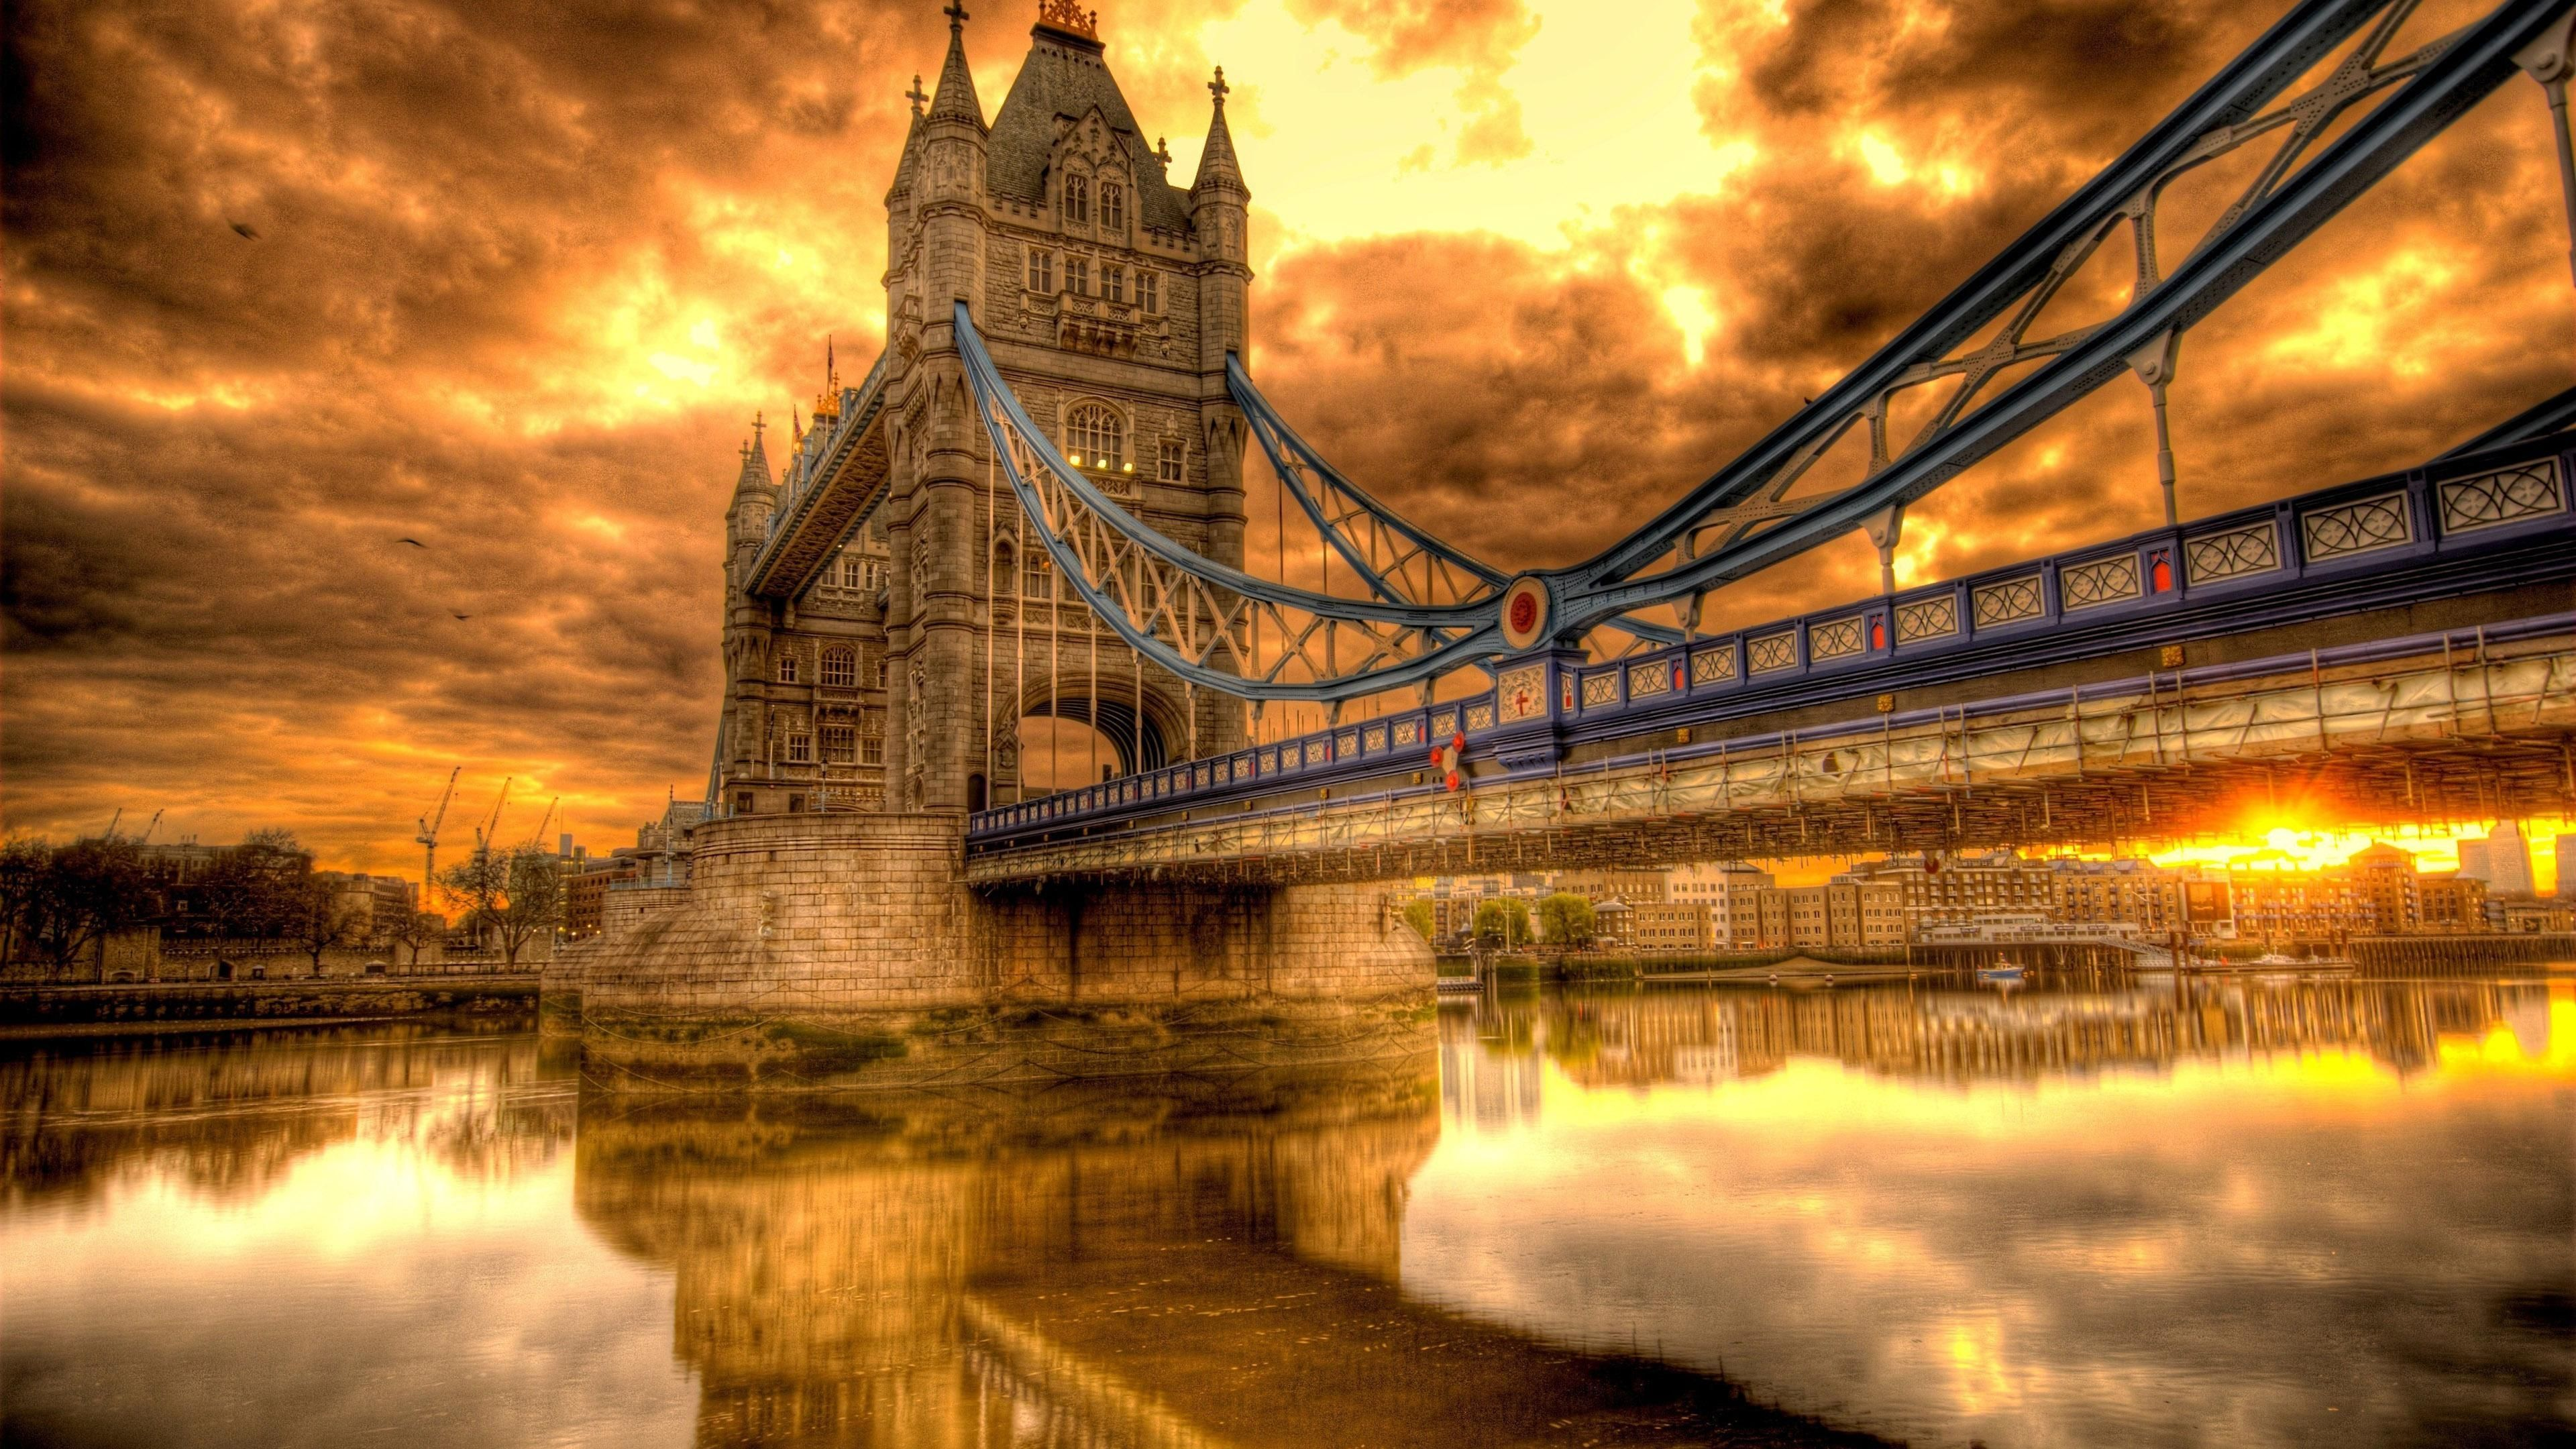 download desktop backgrounds uk europe uk bridge london united kingdom england world tower bridge intended for download desktop backgrounds uk 3840 x